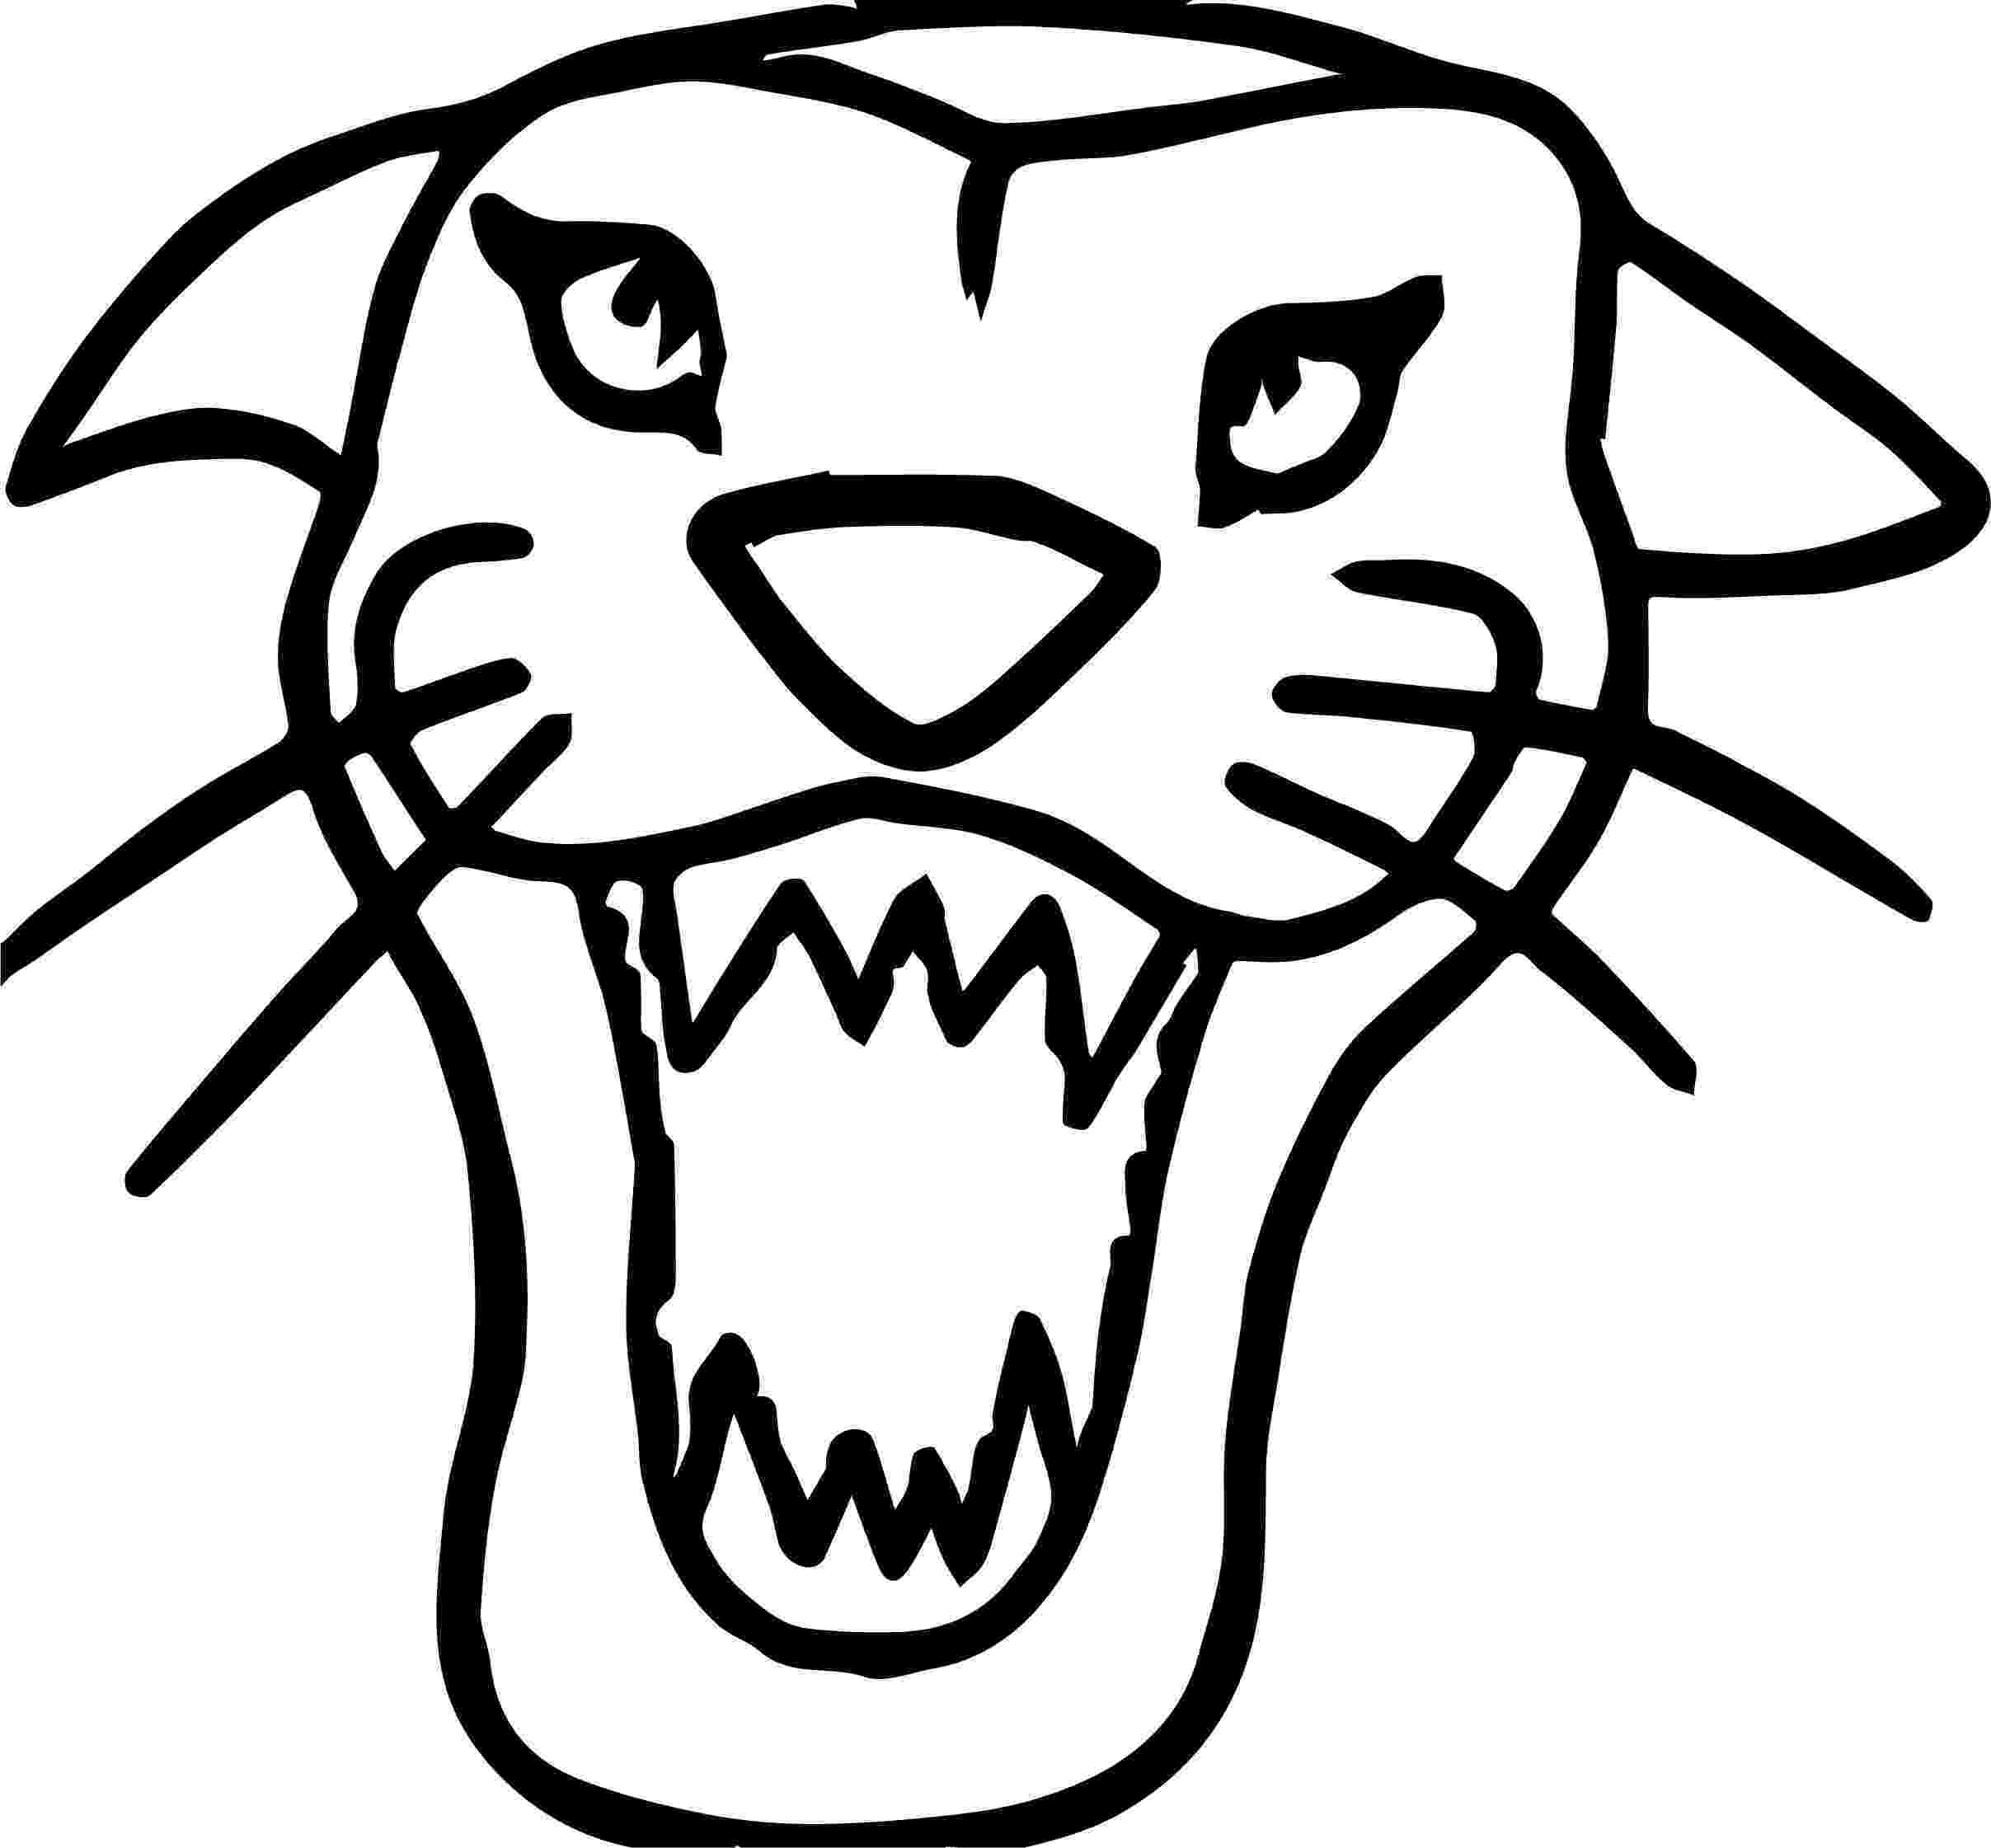 tiger face coloring page tiger wild face coloring page wecoloringpagecom page face tiger coloring